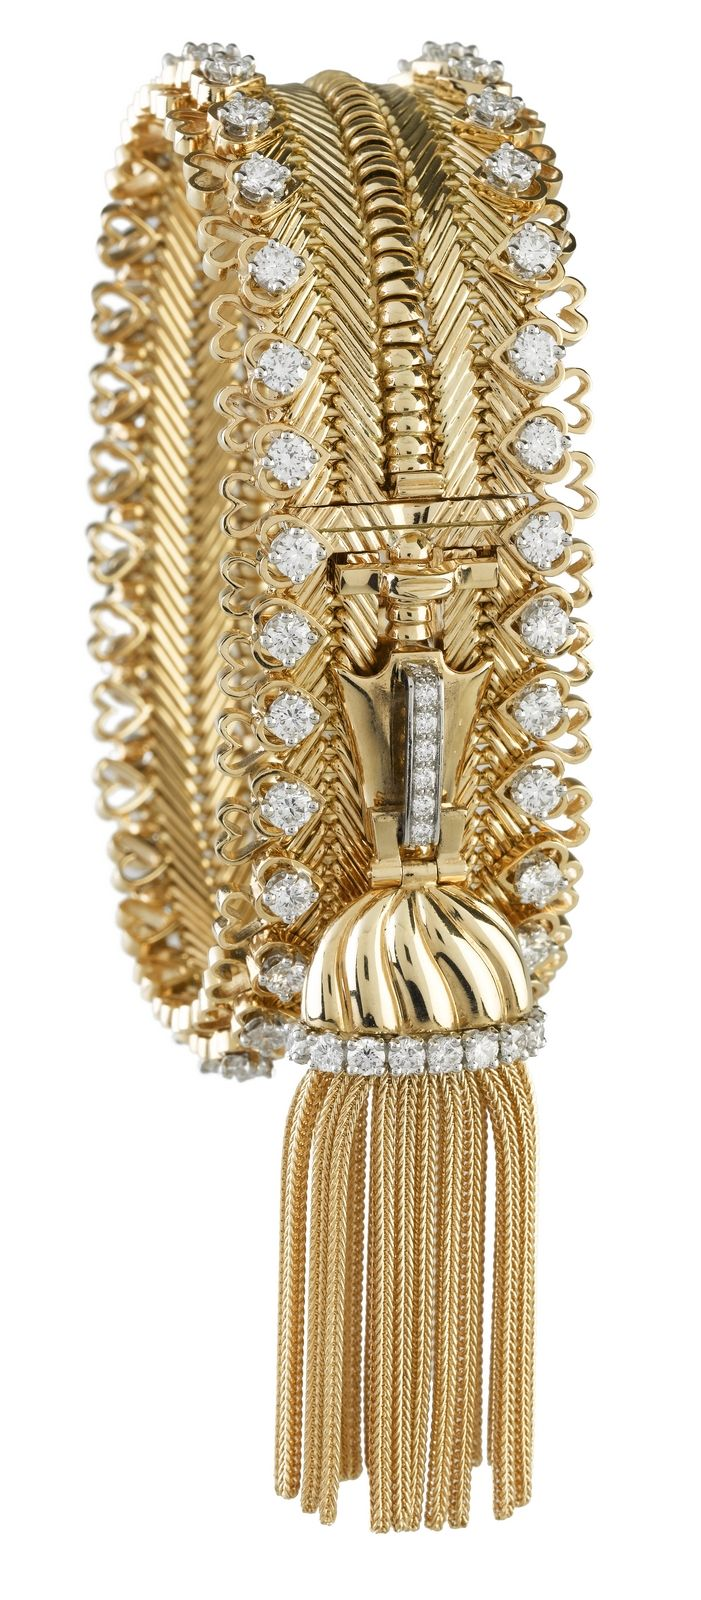 Van cleef u arpels zip bracelet van cleef and arpels pinterest